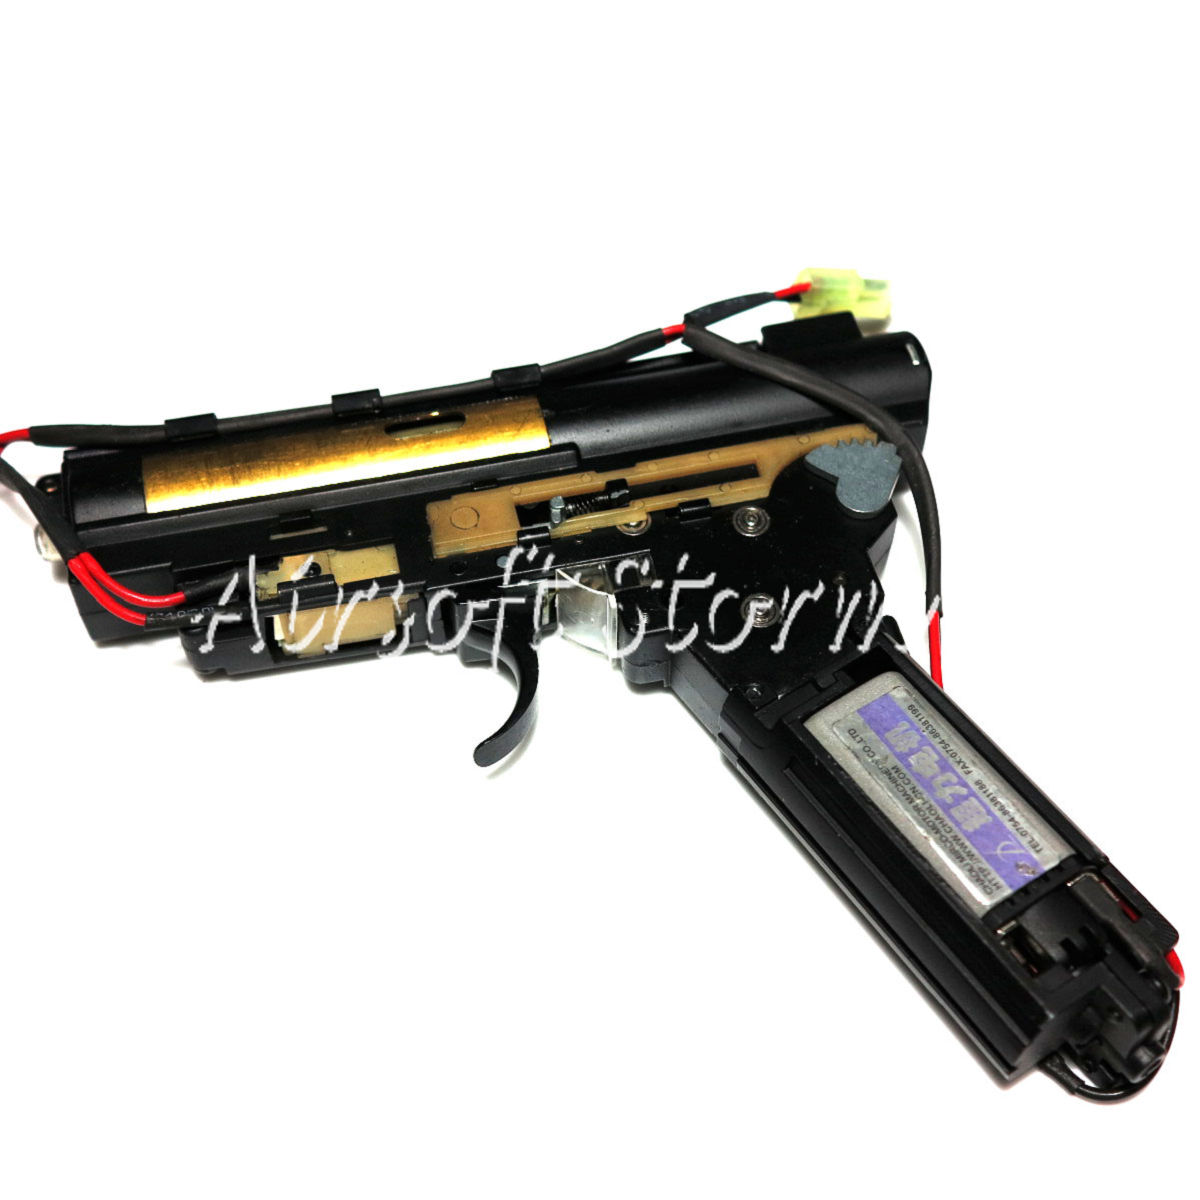 Shooting Gear D-Boys 7mm Complete AK AEG Gearbox Ver.3 with Motor